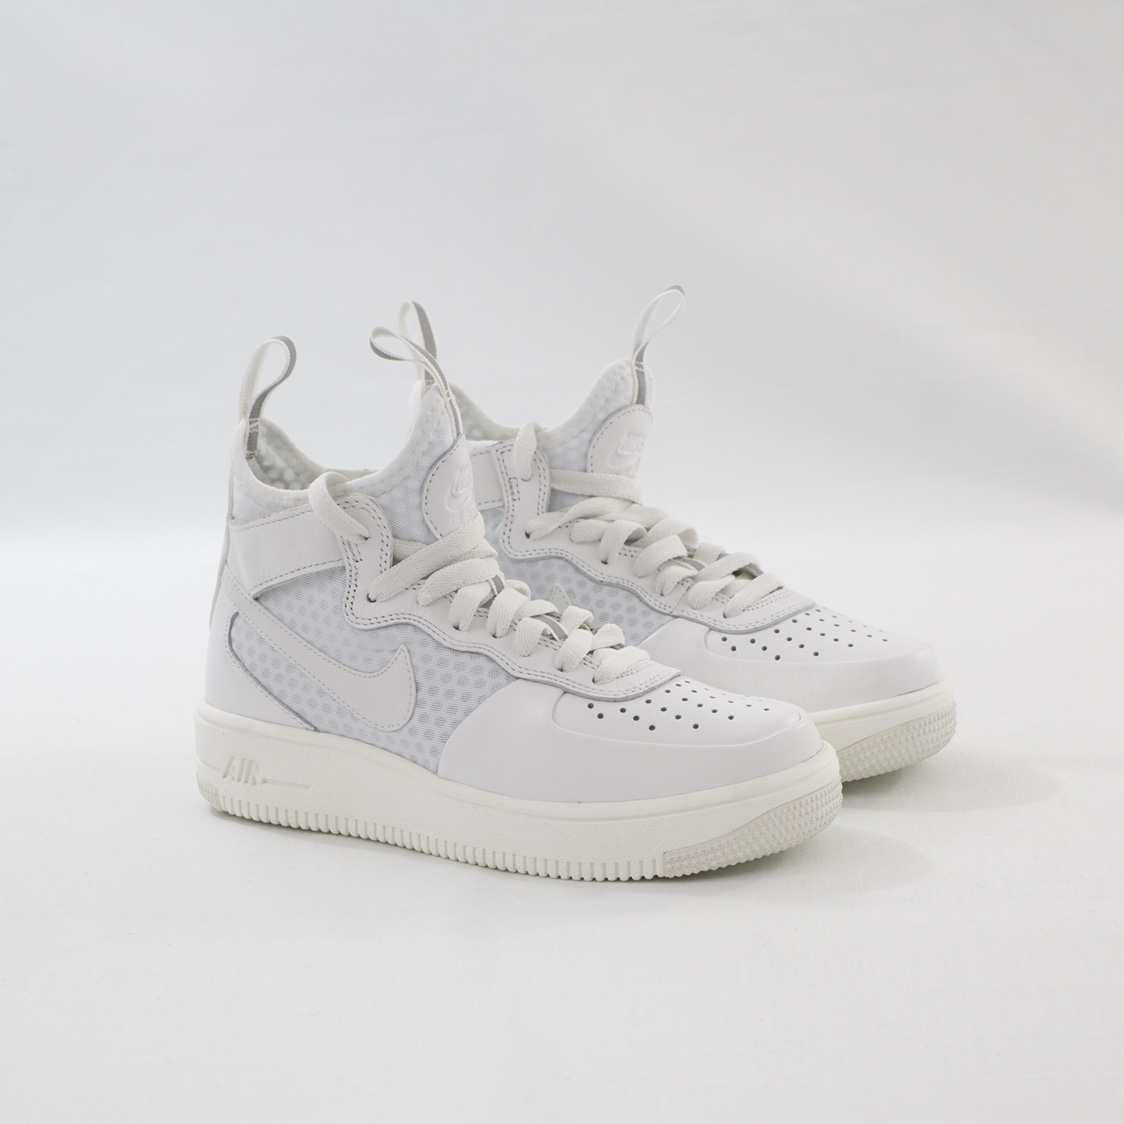 Nike Air Force 1 Ultraforce MID White WMNS NWT